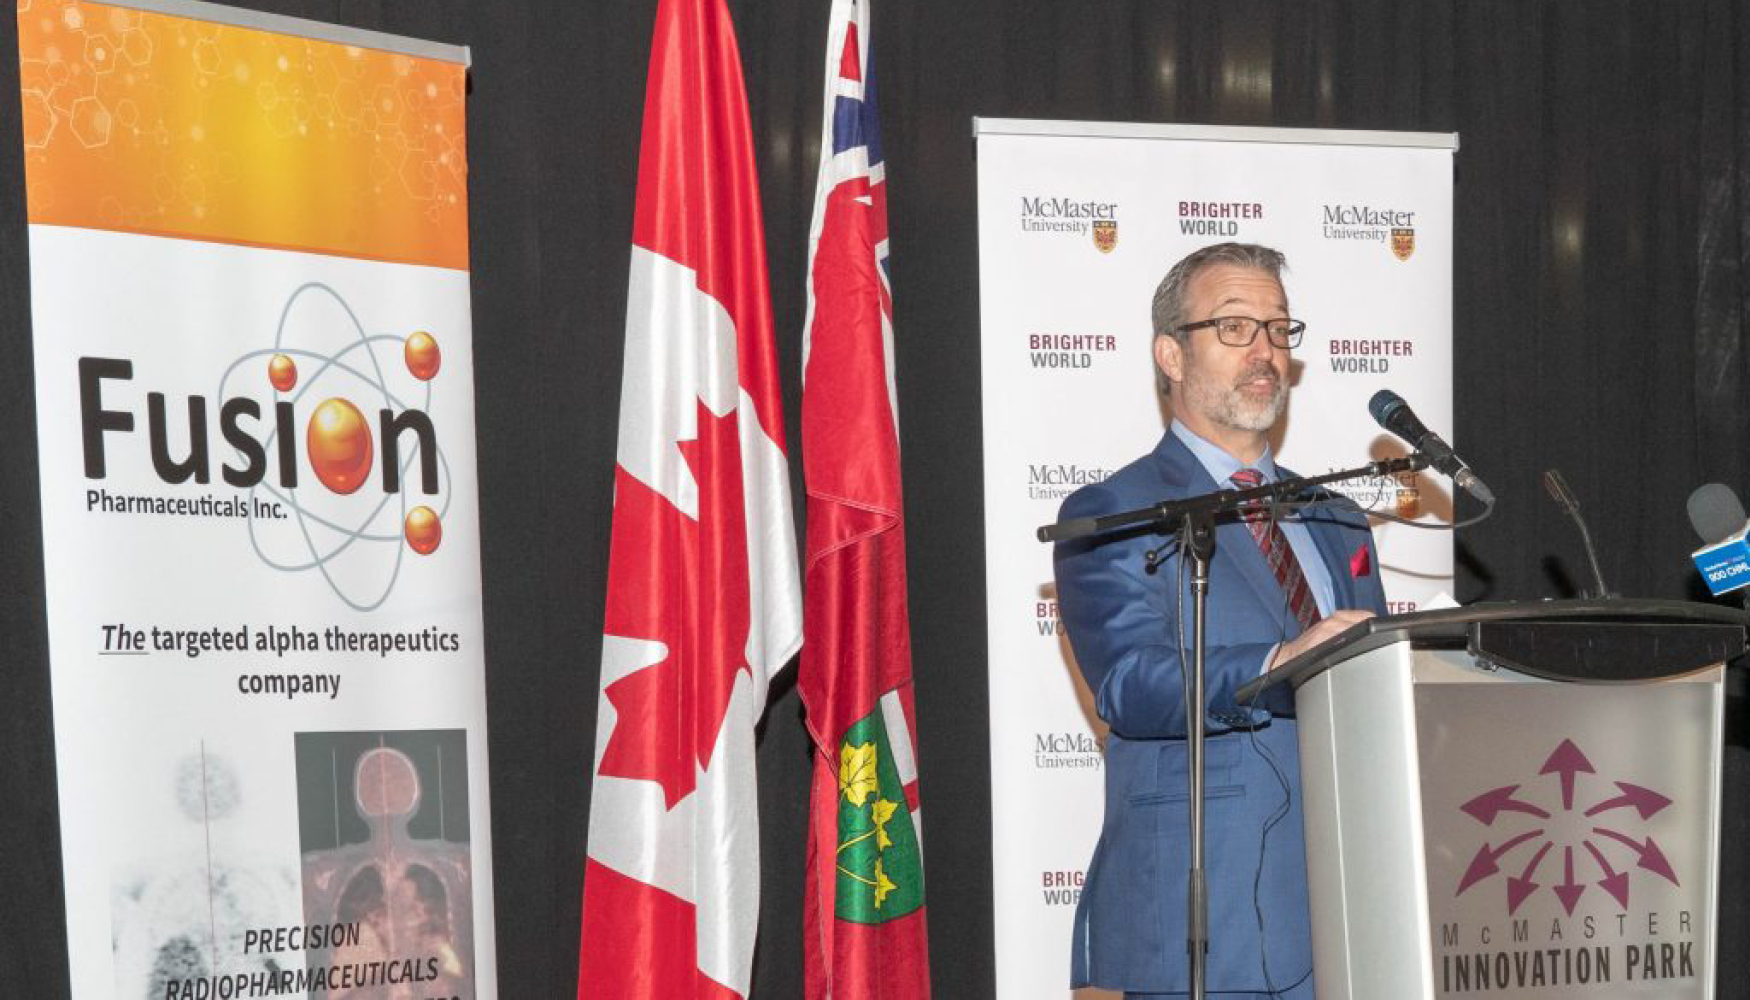 Fusion Pharmaceuticals, founded by chemistry professor John Valliant, began as a McMaster-based startup and is now listed on the Nasdaq. The new McMaster Seed Fund will support promising McMaster start-ups with high growth potential.